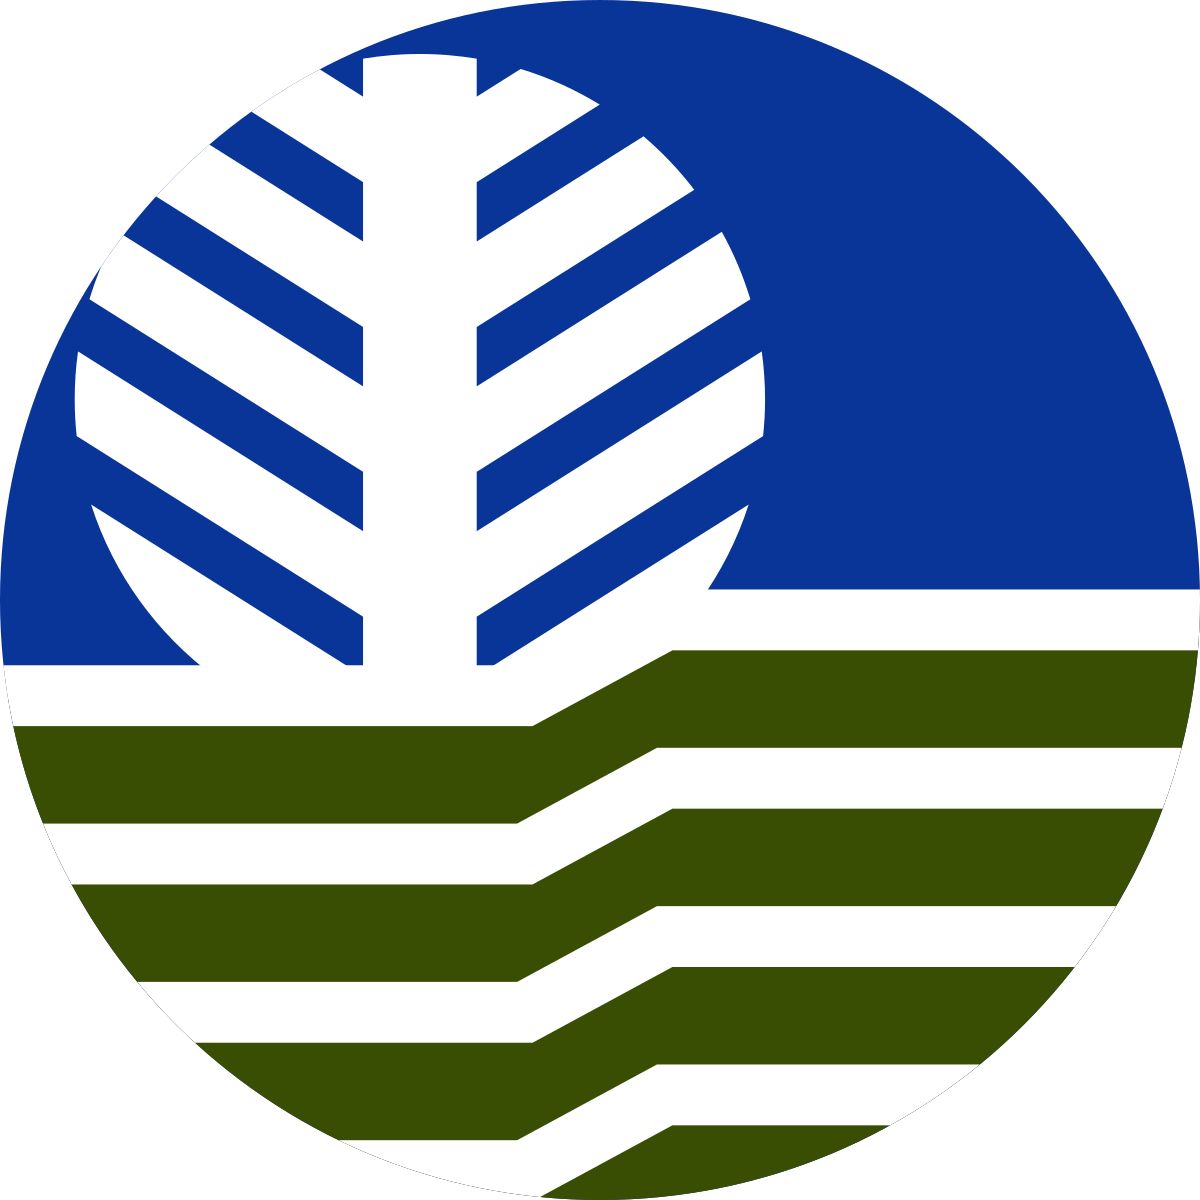 Department Of Environment And Natural Resources Denr Clipart.